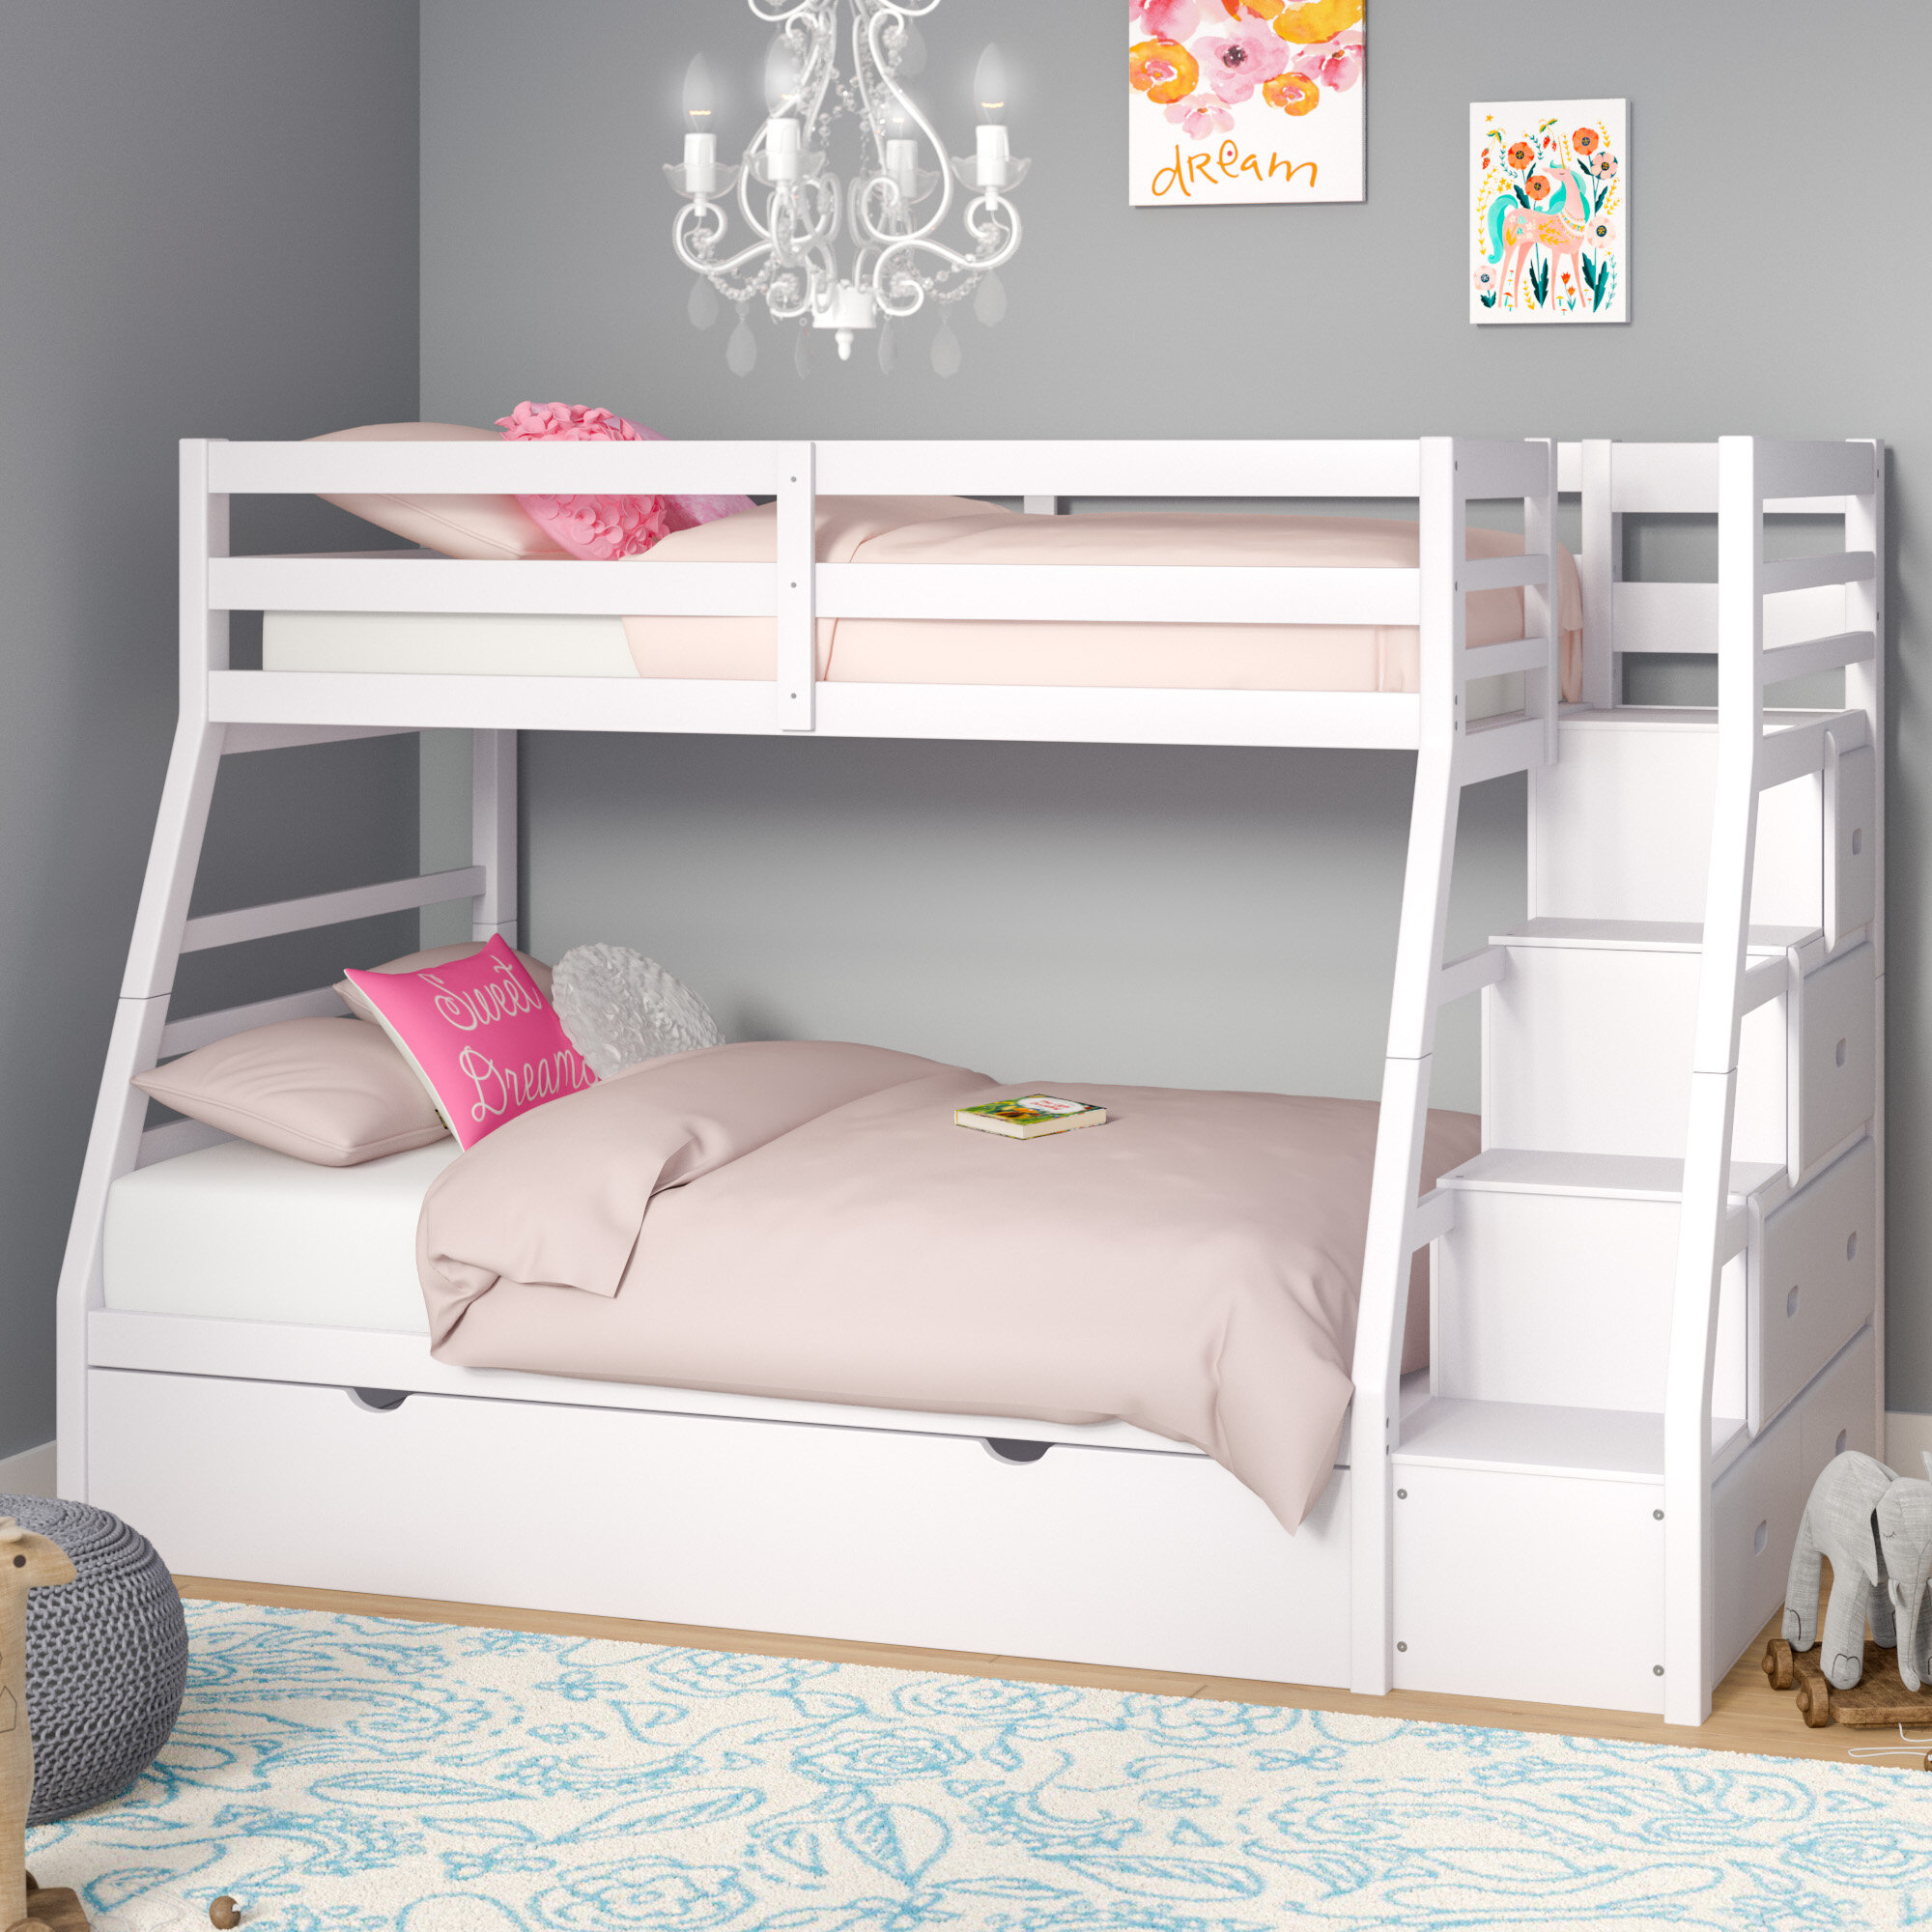 height bed easy kids decofurnish larger low beds full with bunk steps ikea l ceiling stairs view